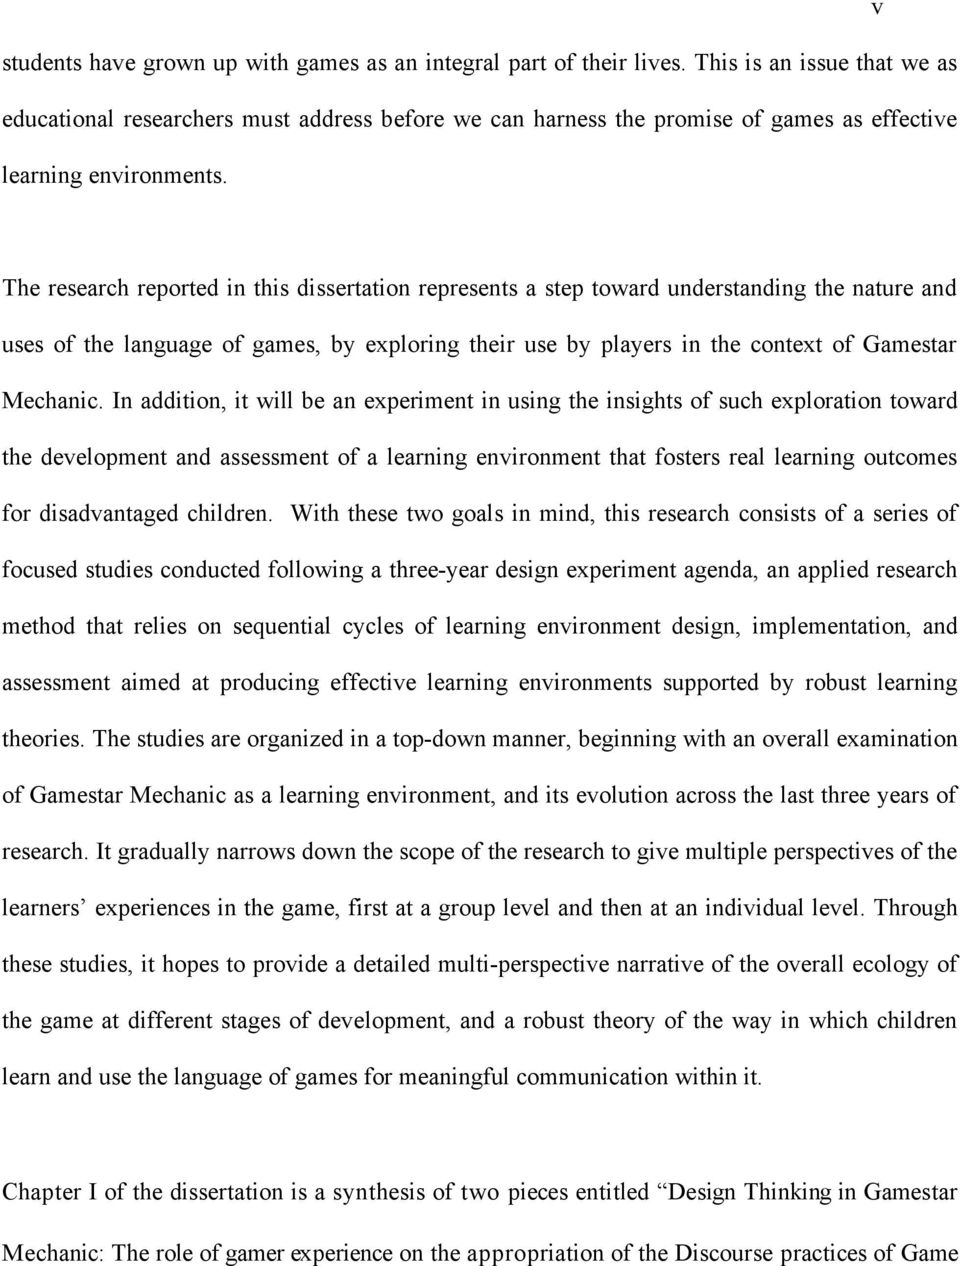 The research reported in this dissertation represents a step toward understanding the nature and uses of the language of games, by exploring their use by players in the context of Gamestar Mechanic.